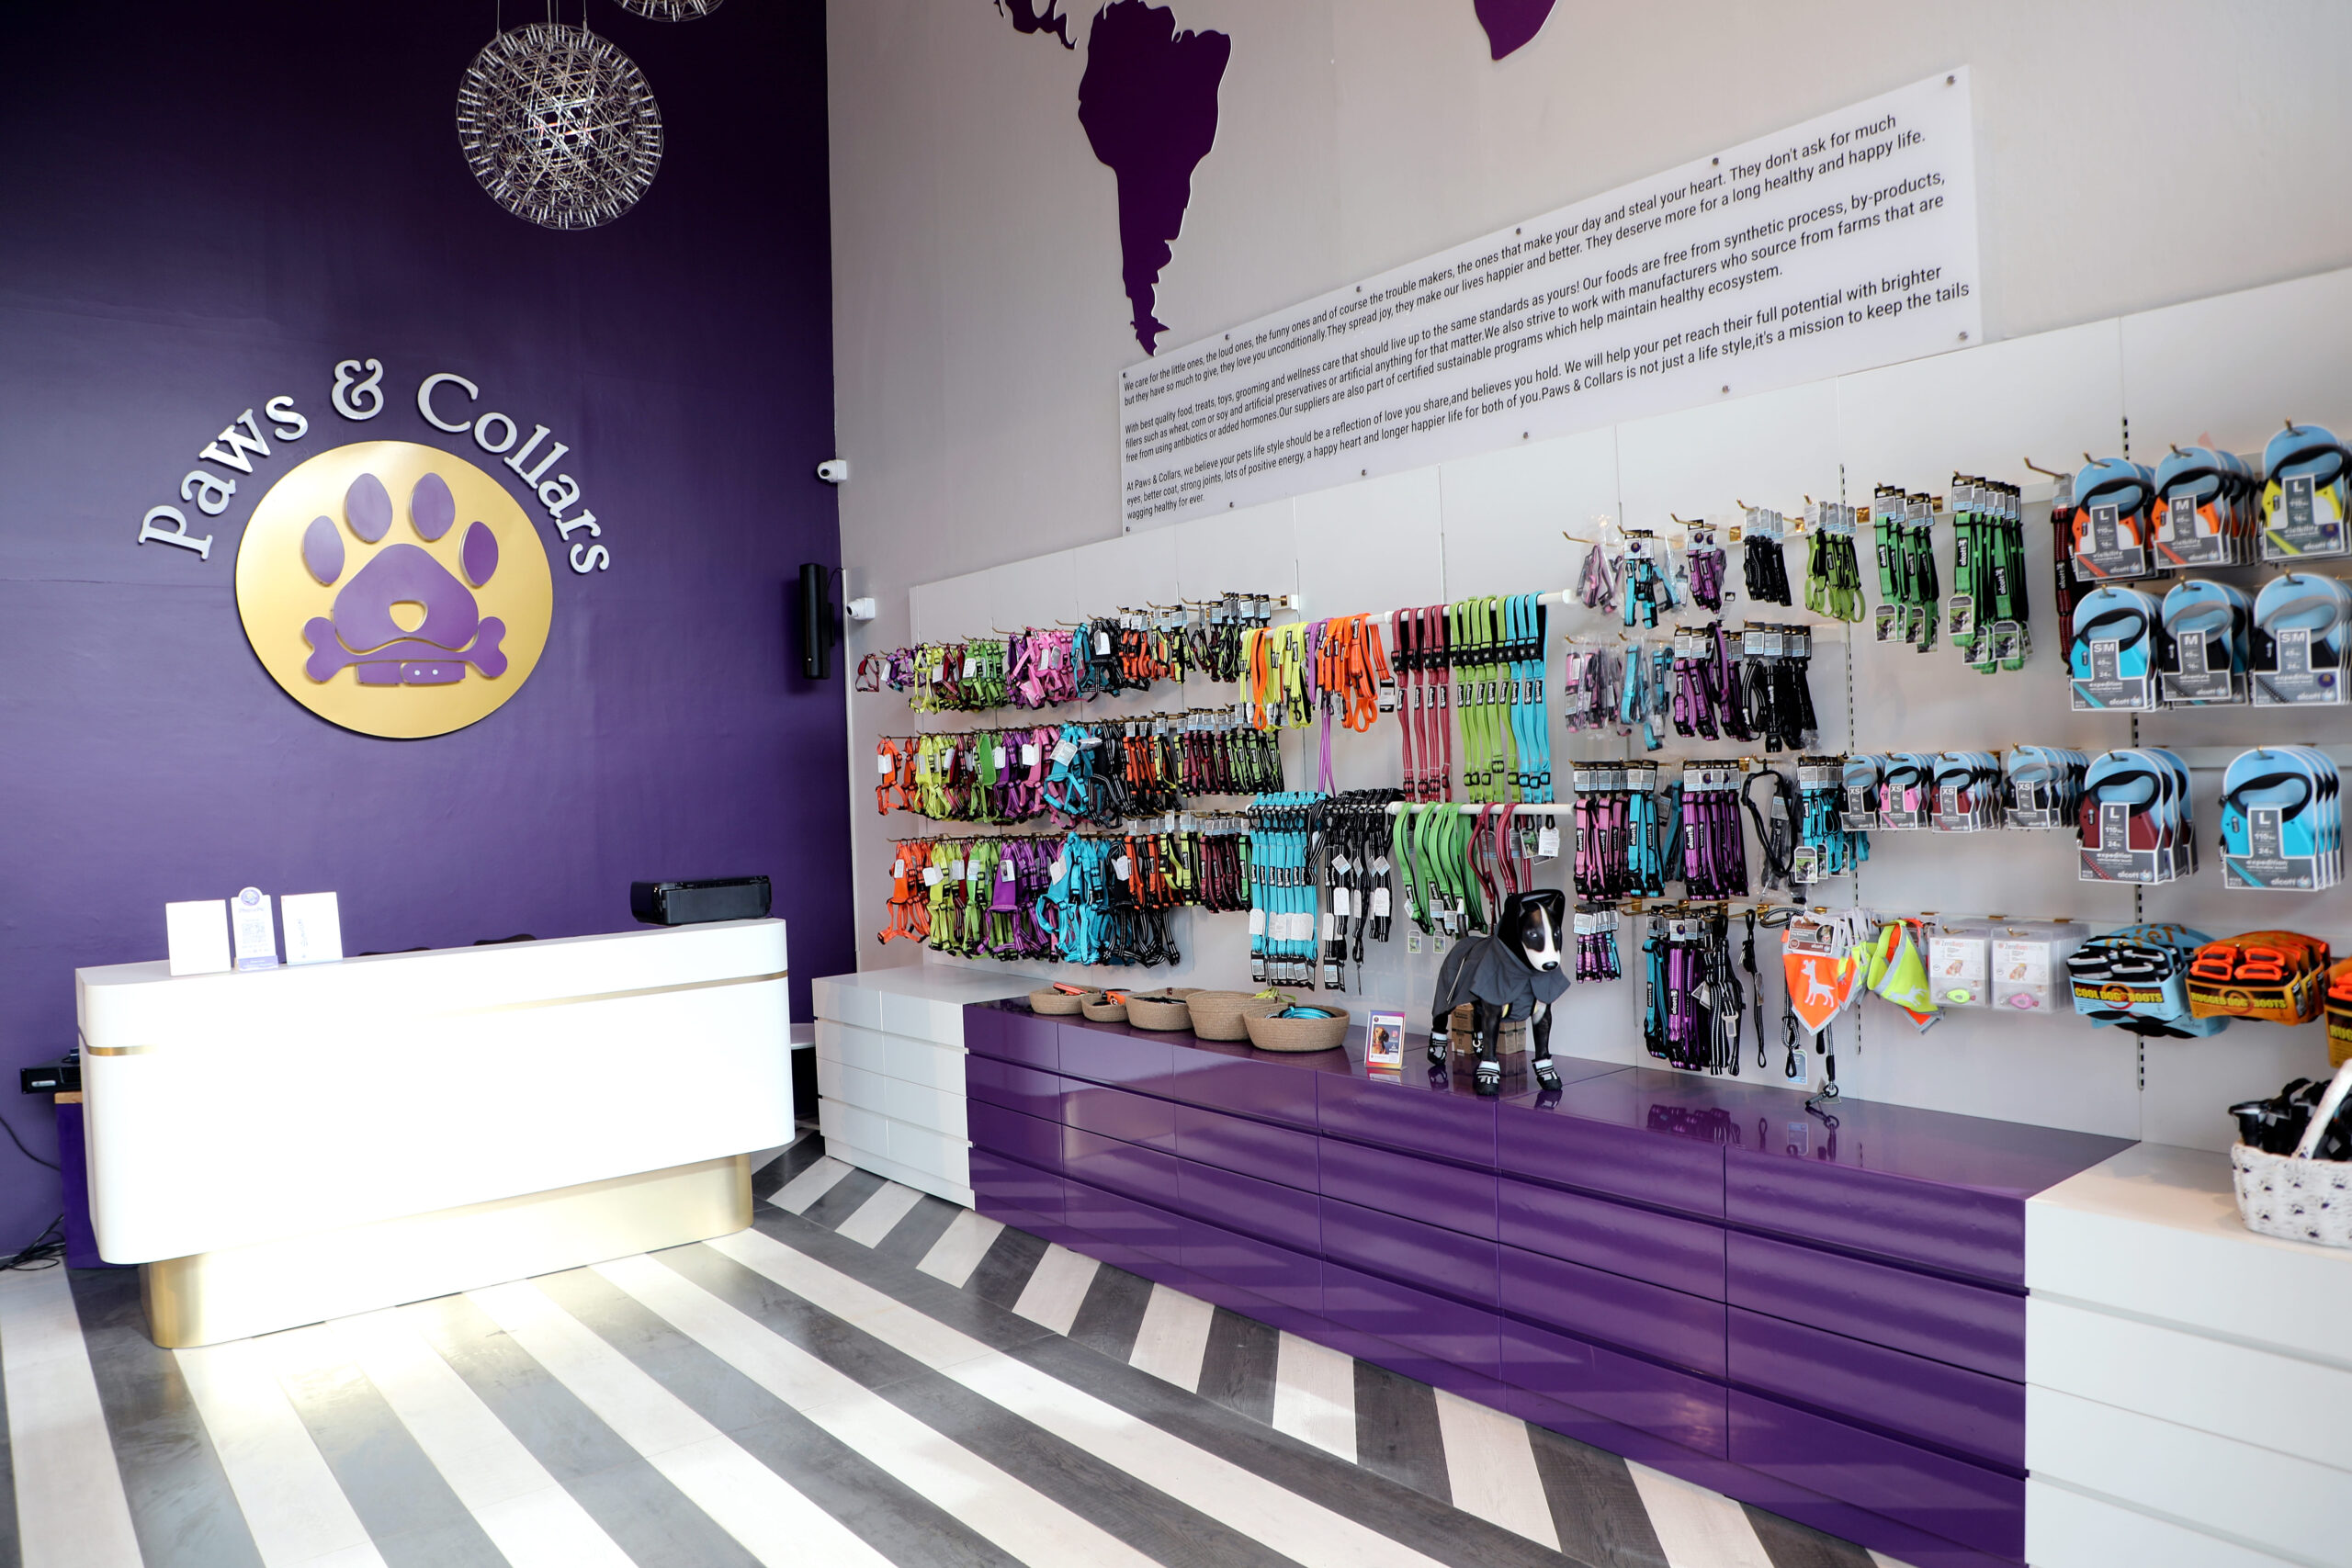 First of its Kind Paws n Collars Launches Pet Mall